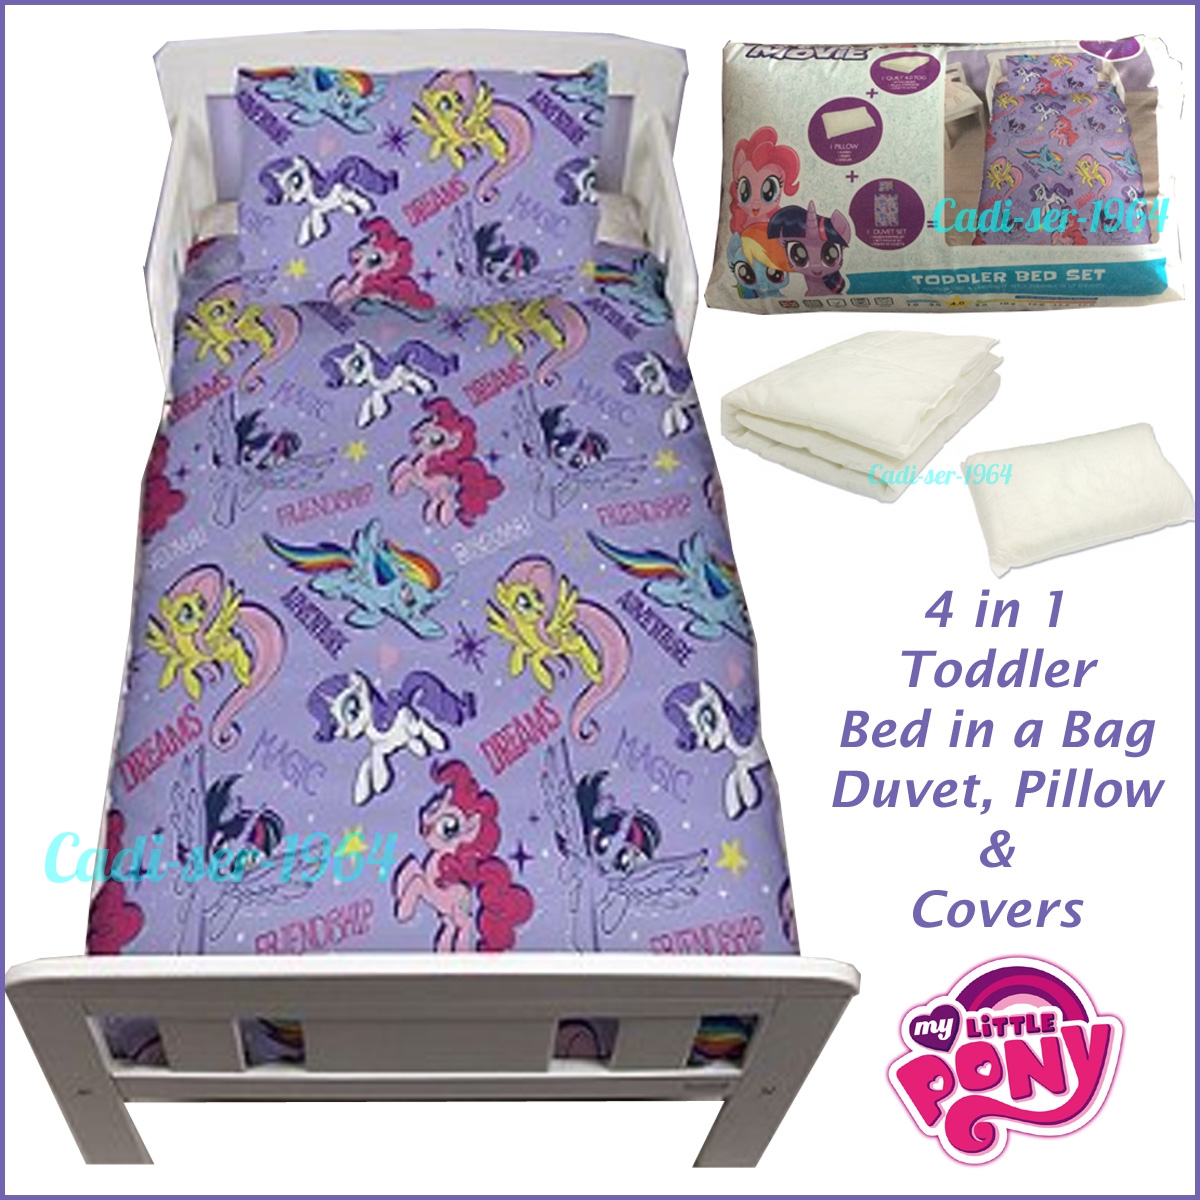 factory price f6889 95332 Details about My Little Pony Toddler Bed Set Duvet Pillow & Duvet Cover 4  in 1 Bed in a Bag